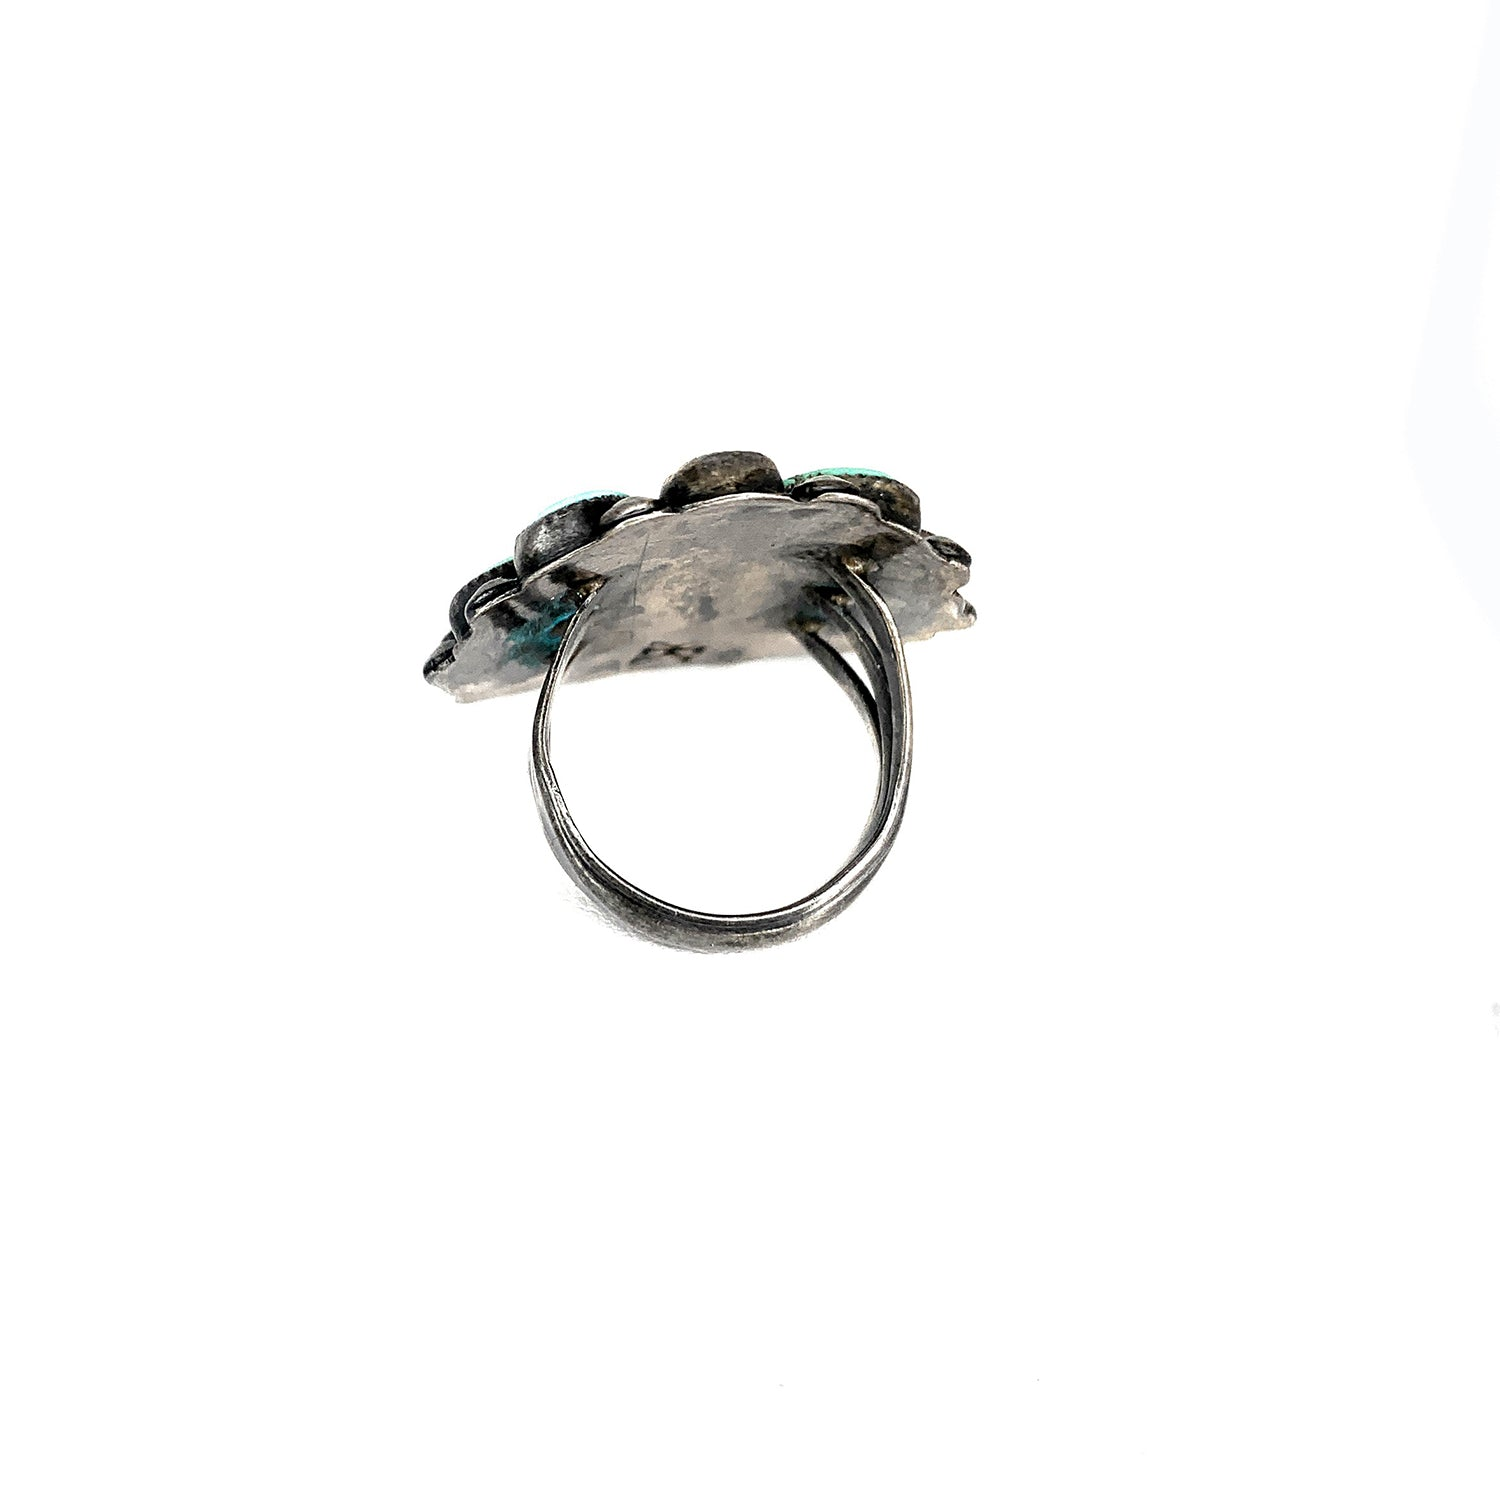 Vintage 1950s Jacob Kahe Native American Sterling Silver Turquoise Petit Point Ring - Sz. 4